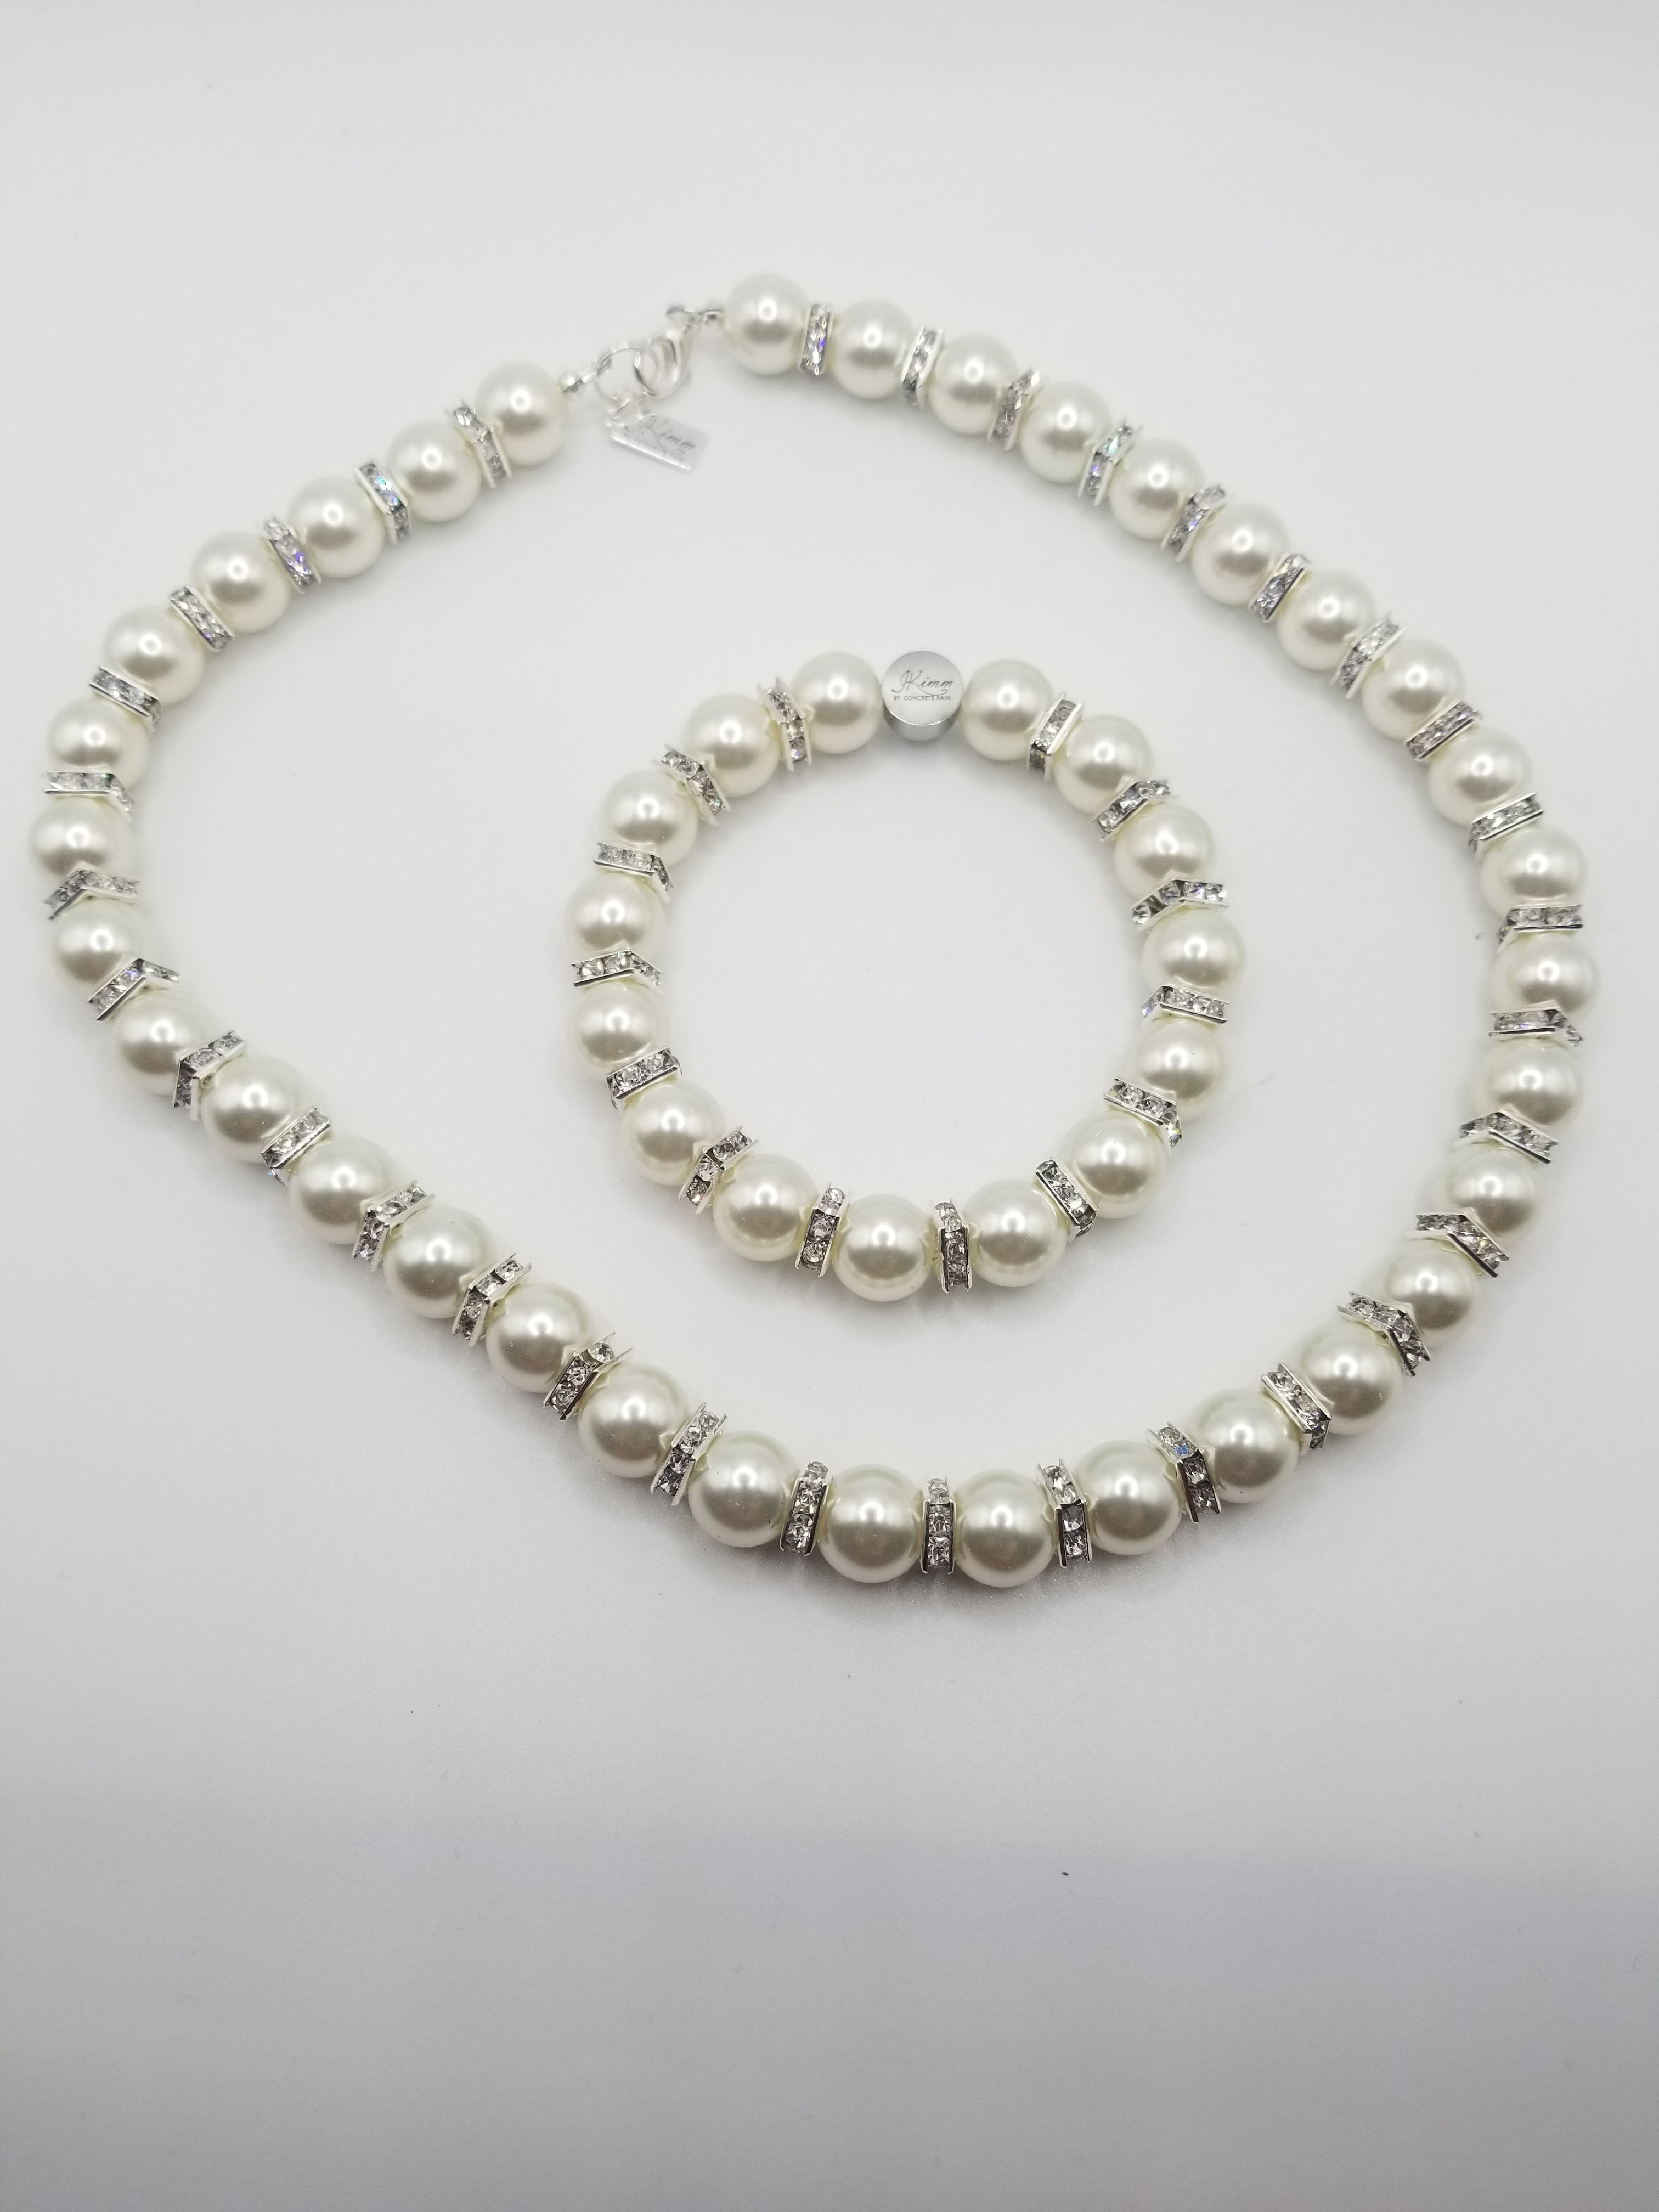 Satin Pearl with Rhinestone Spacer Necklace and Bracelet Set